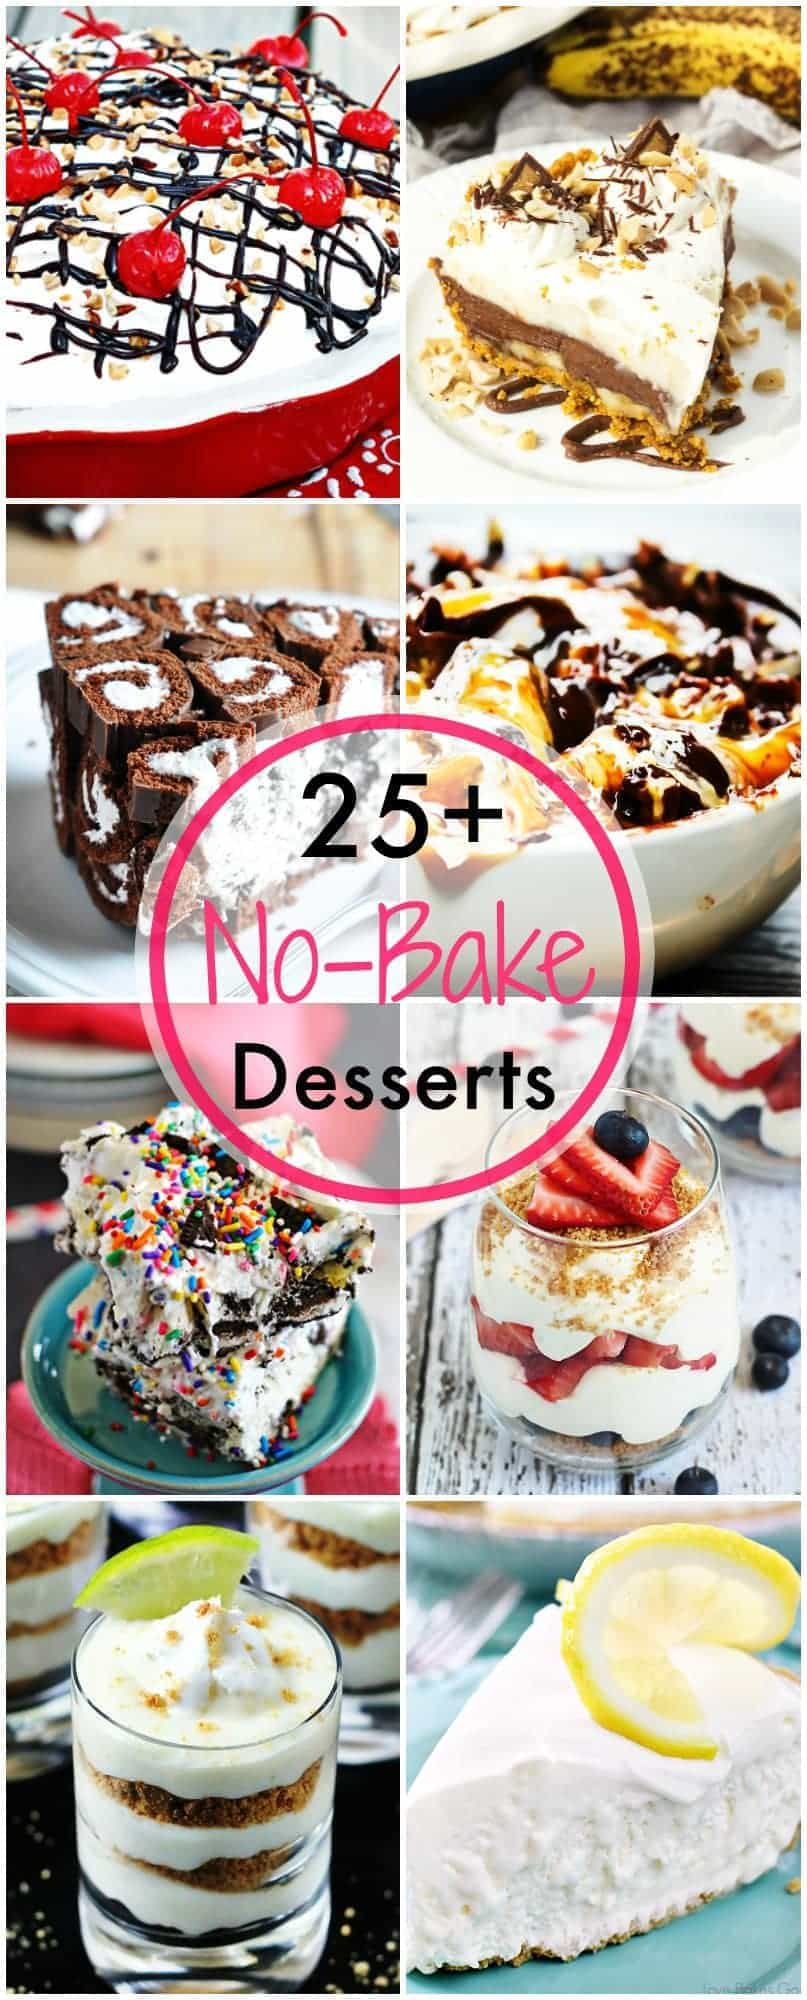 More than 25 No-Bake Desserts....just in time for summer!